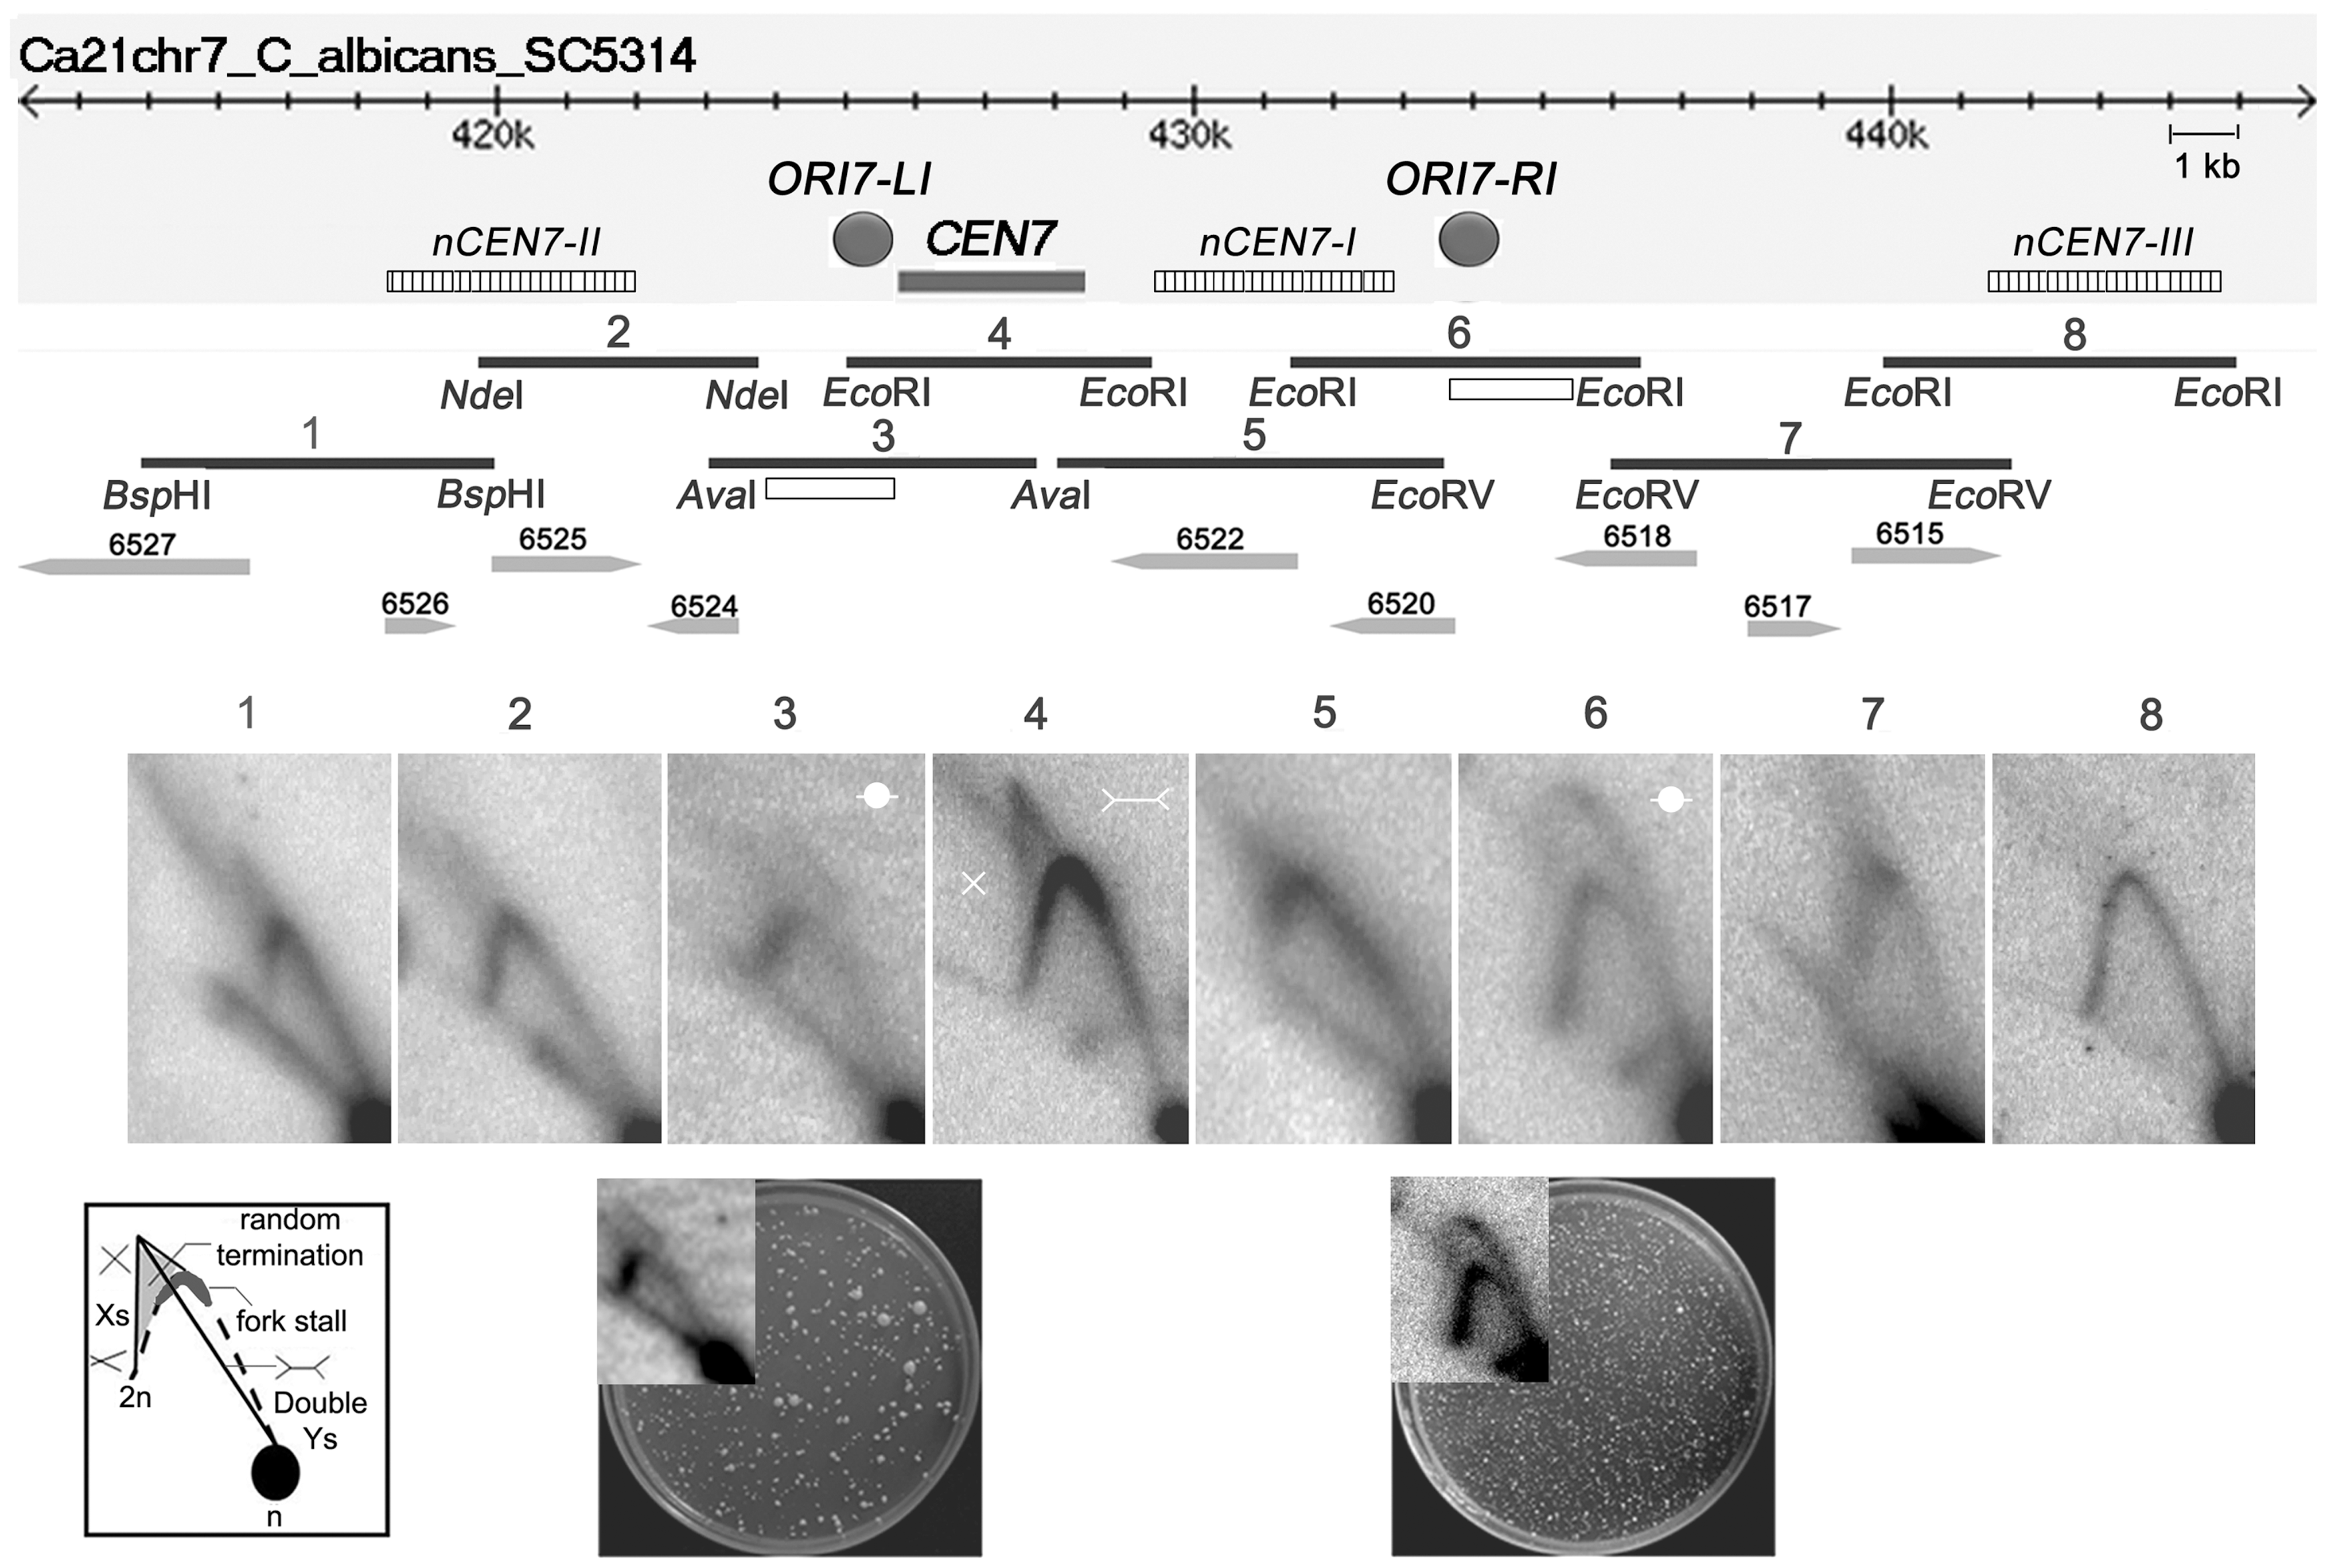 Replication forks stall/terminate randomly during centromere replication.